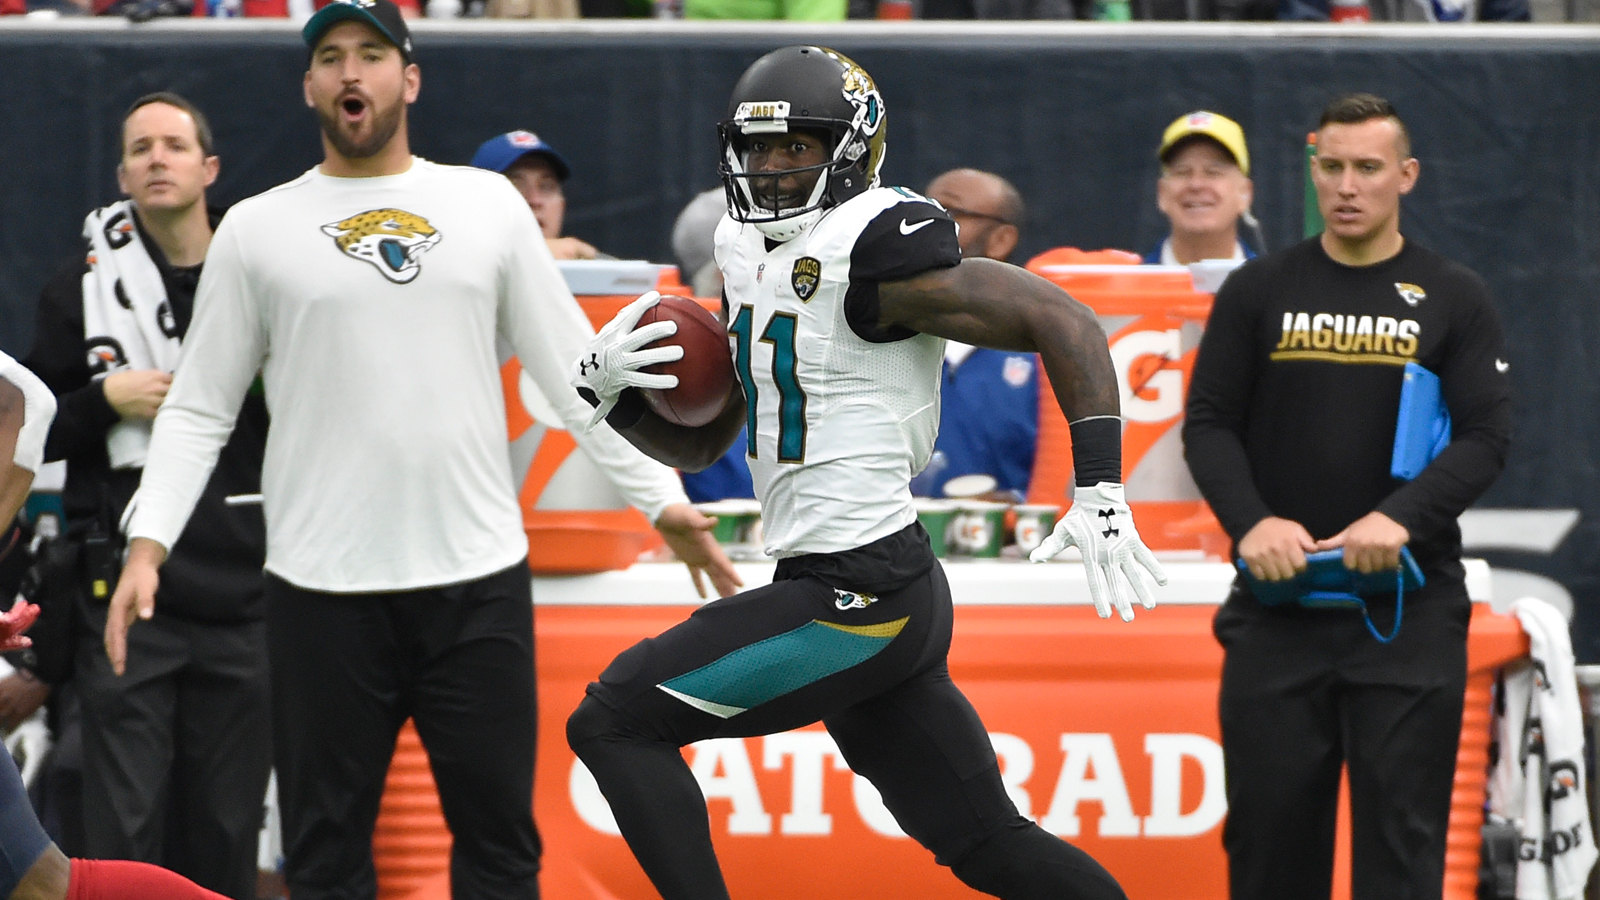 Miserable offense leads to Jaguars' loss to Texans, firing of Gus Bradley